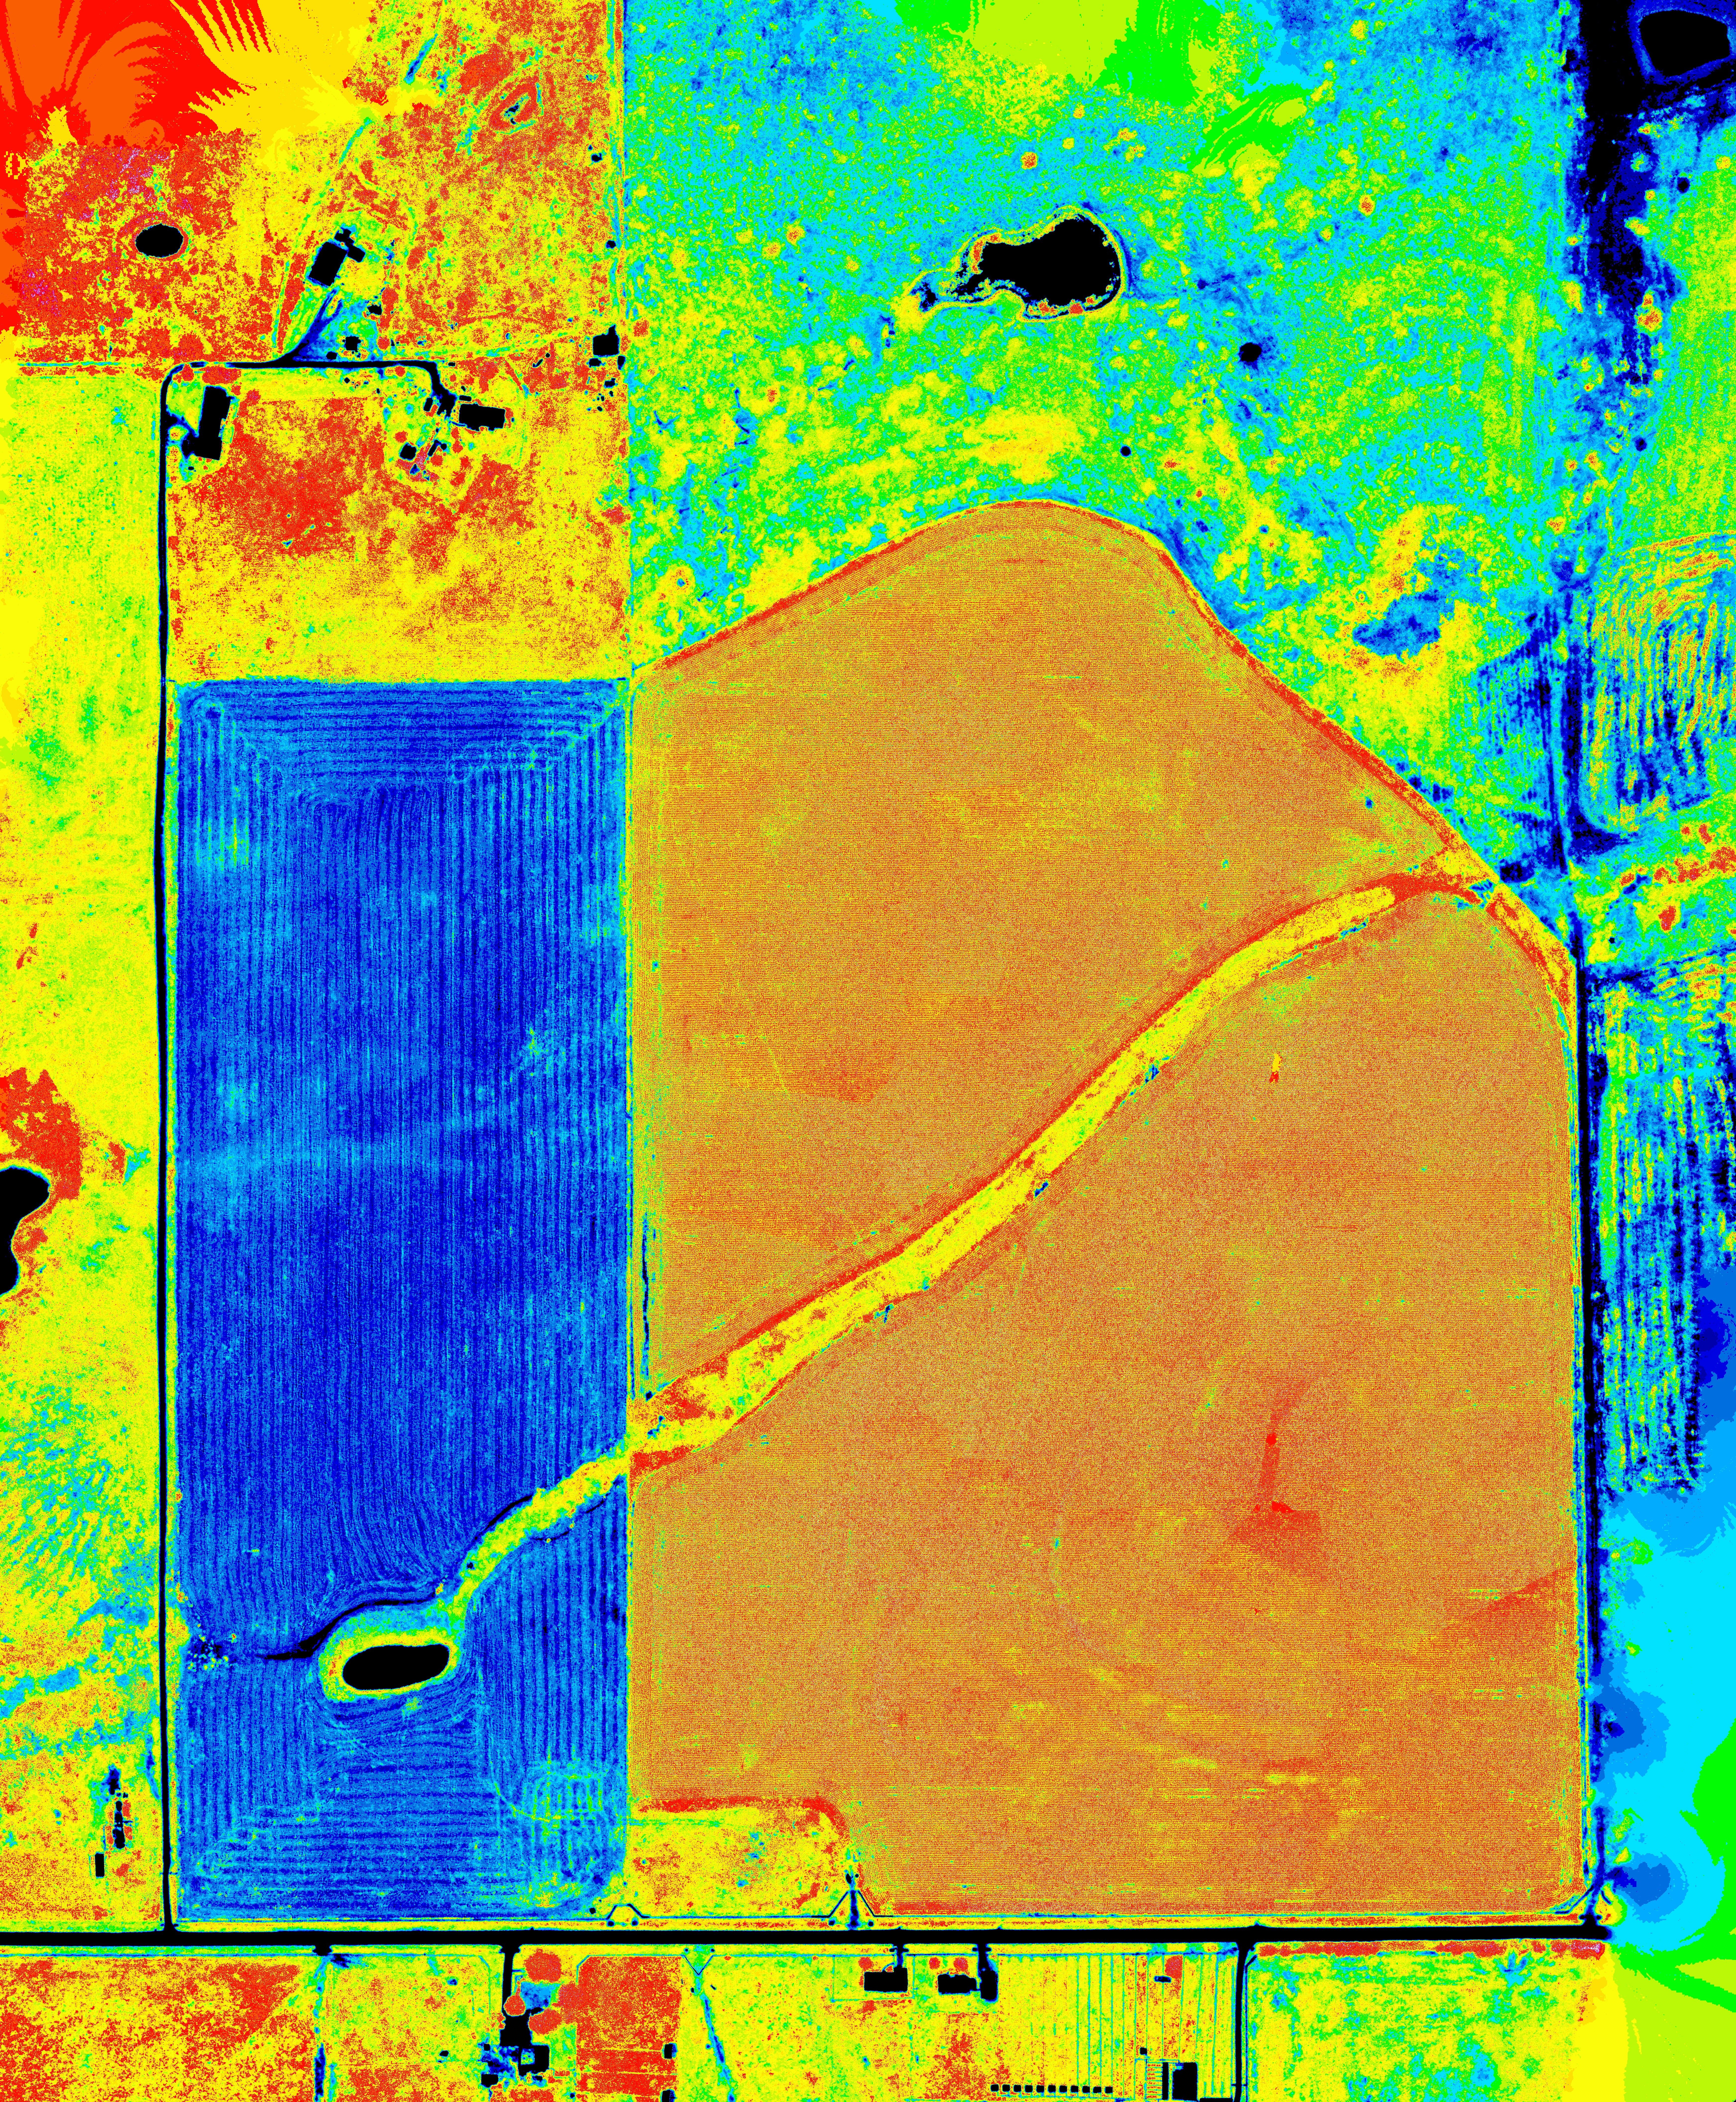 NDVI Map of a corn field and surroundings